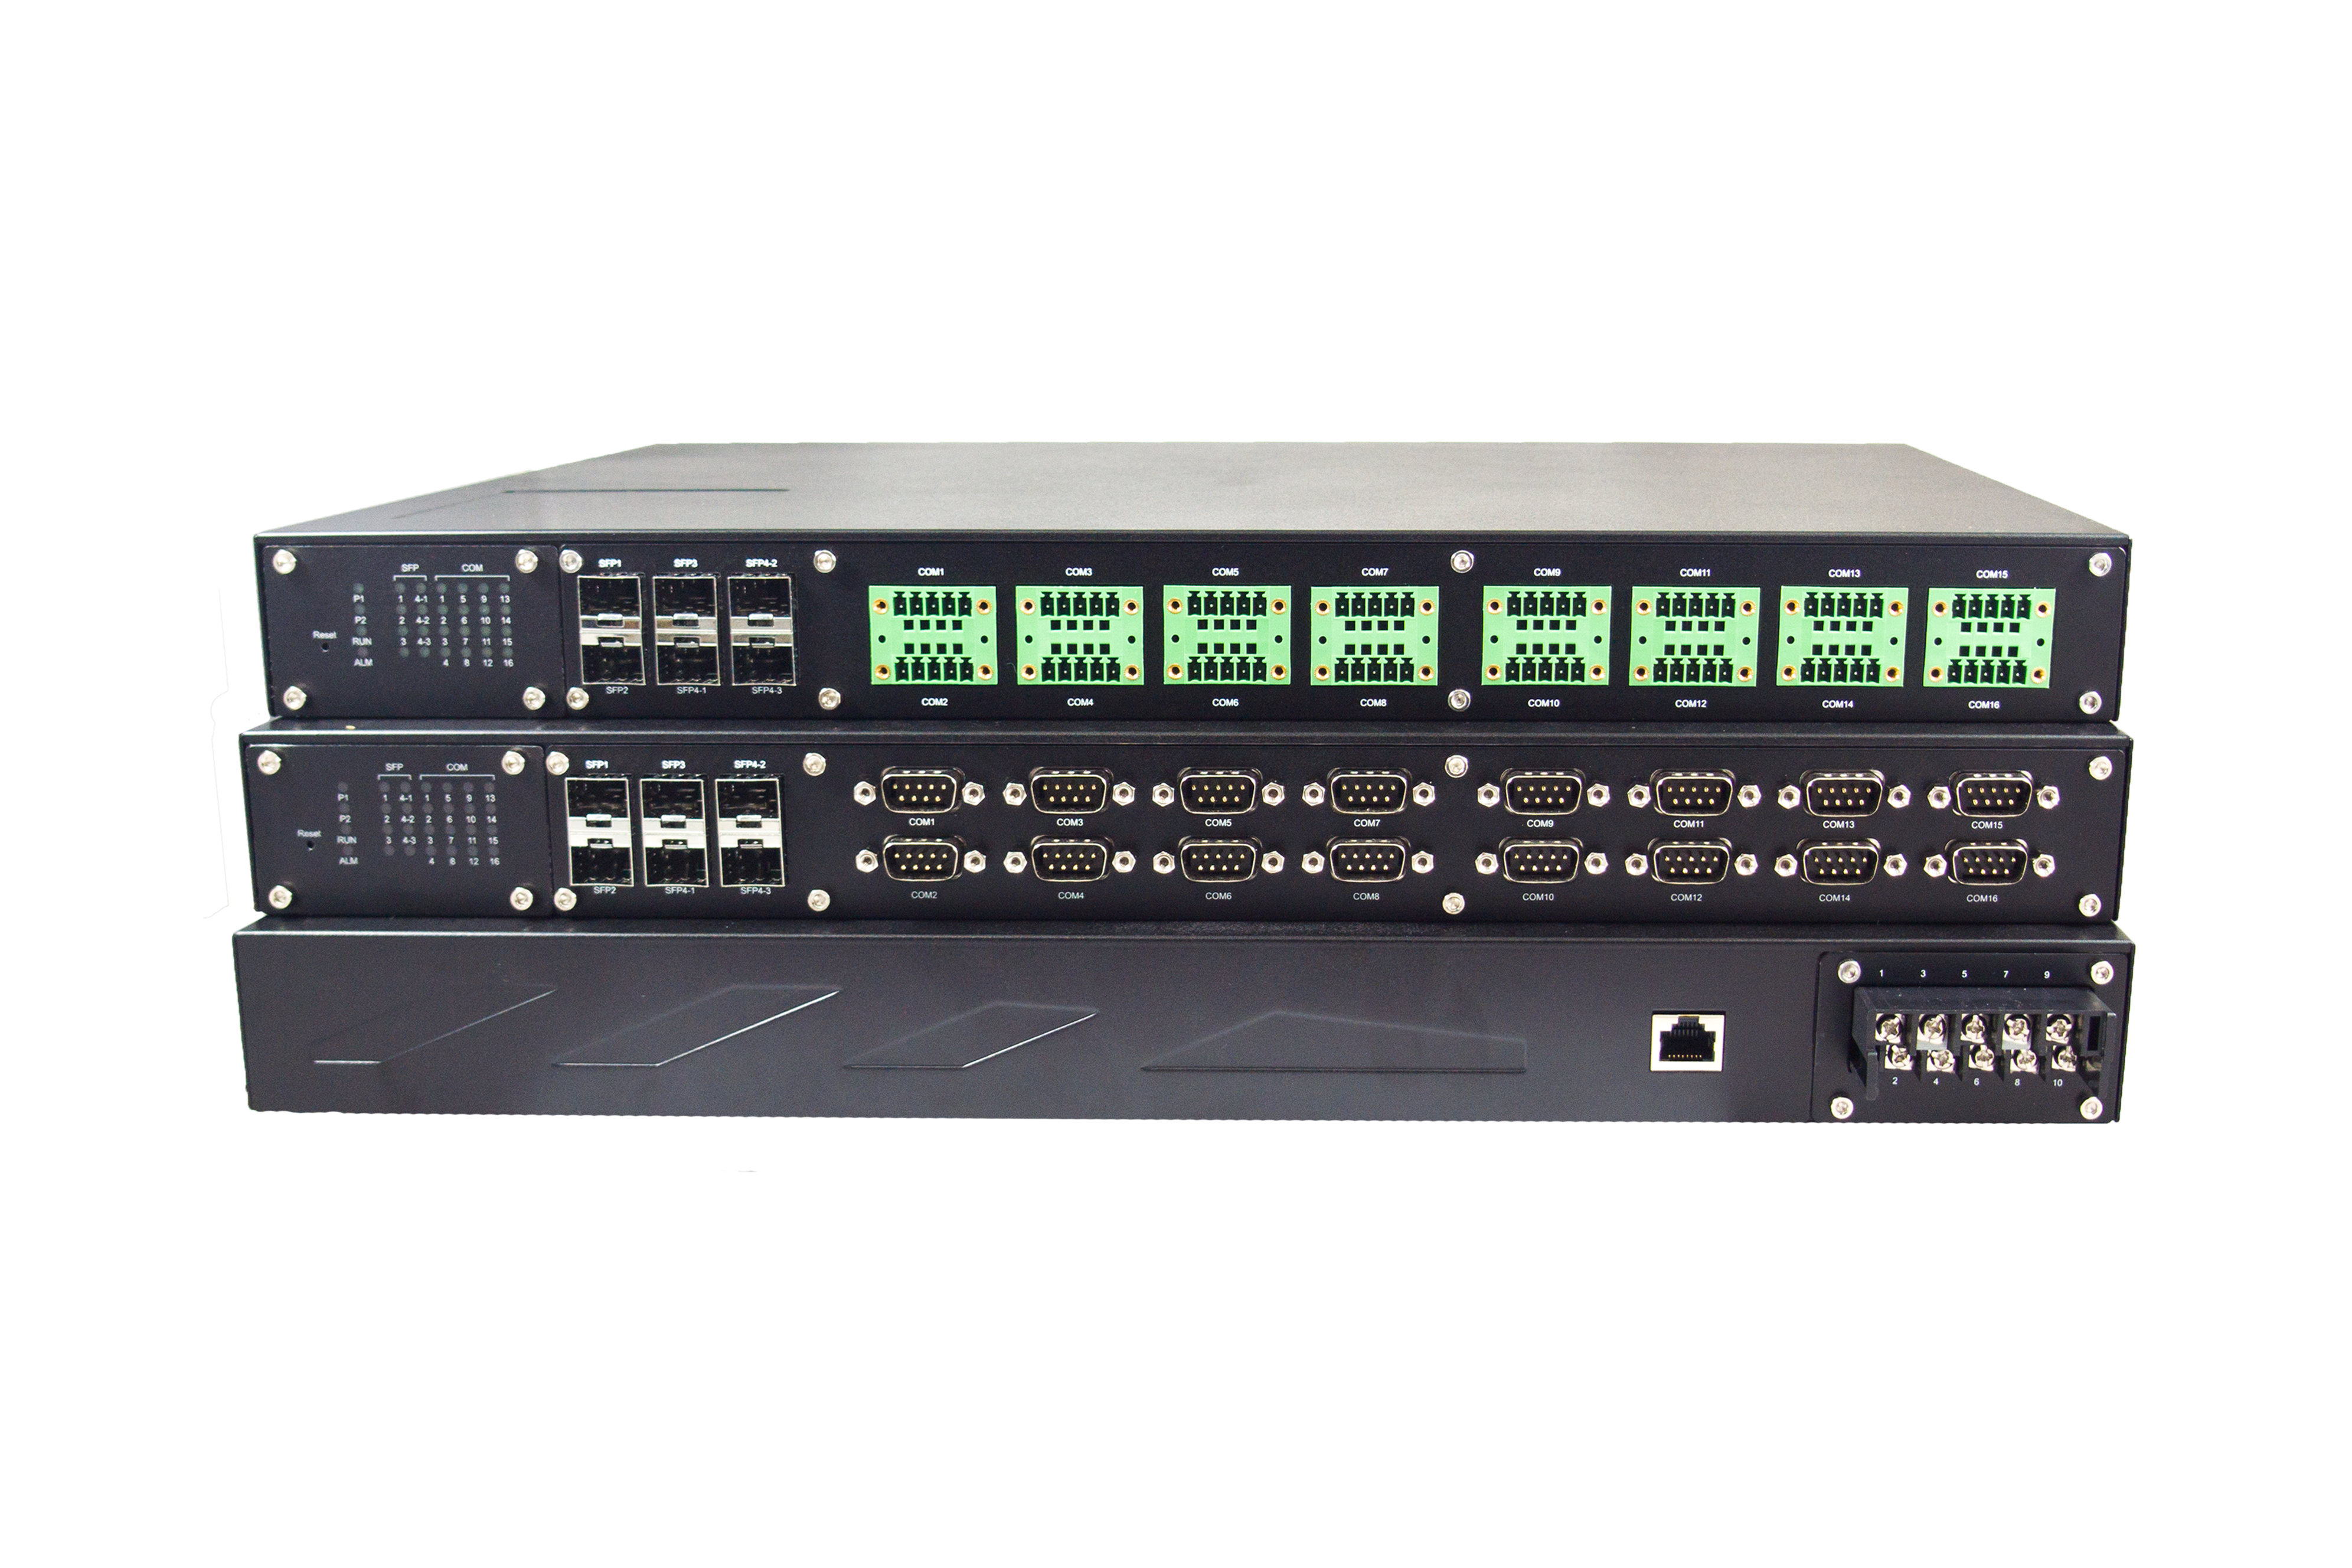 8-Port IEC61850-3 Certified Industrial Rack-Mounted Secure Serial Device Server Remotely monitor, manage, and control industrial field devices